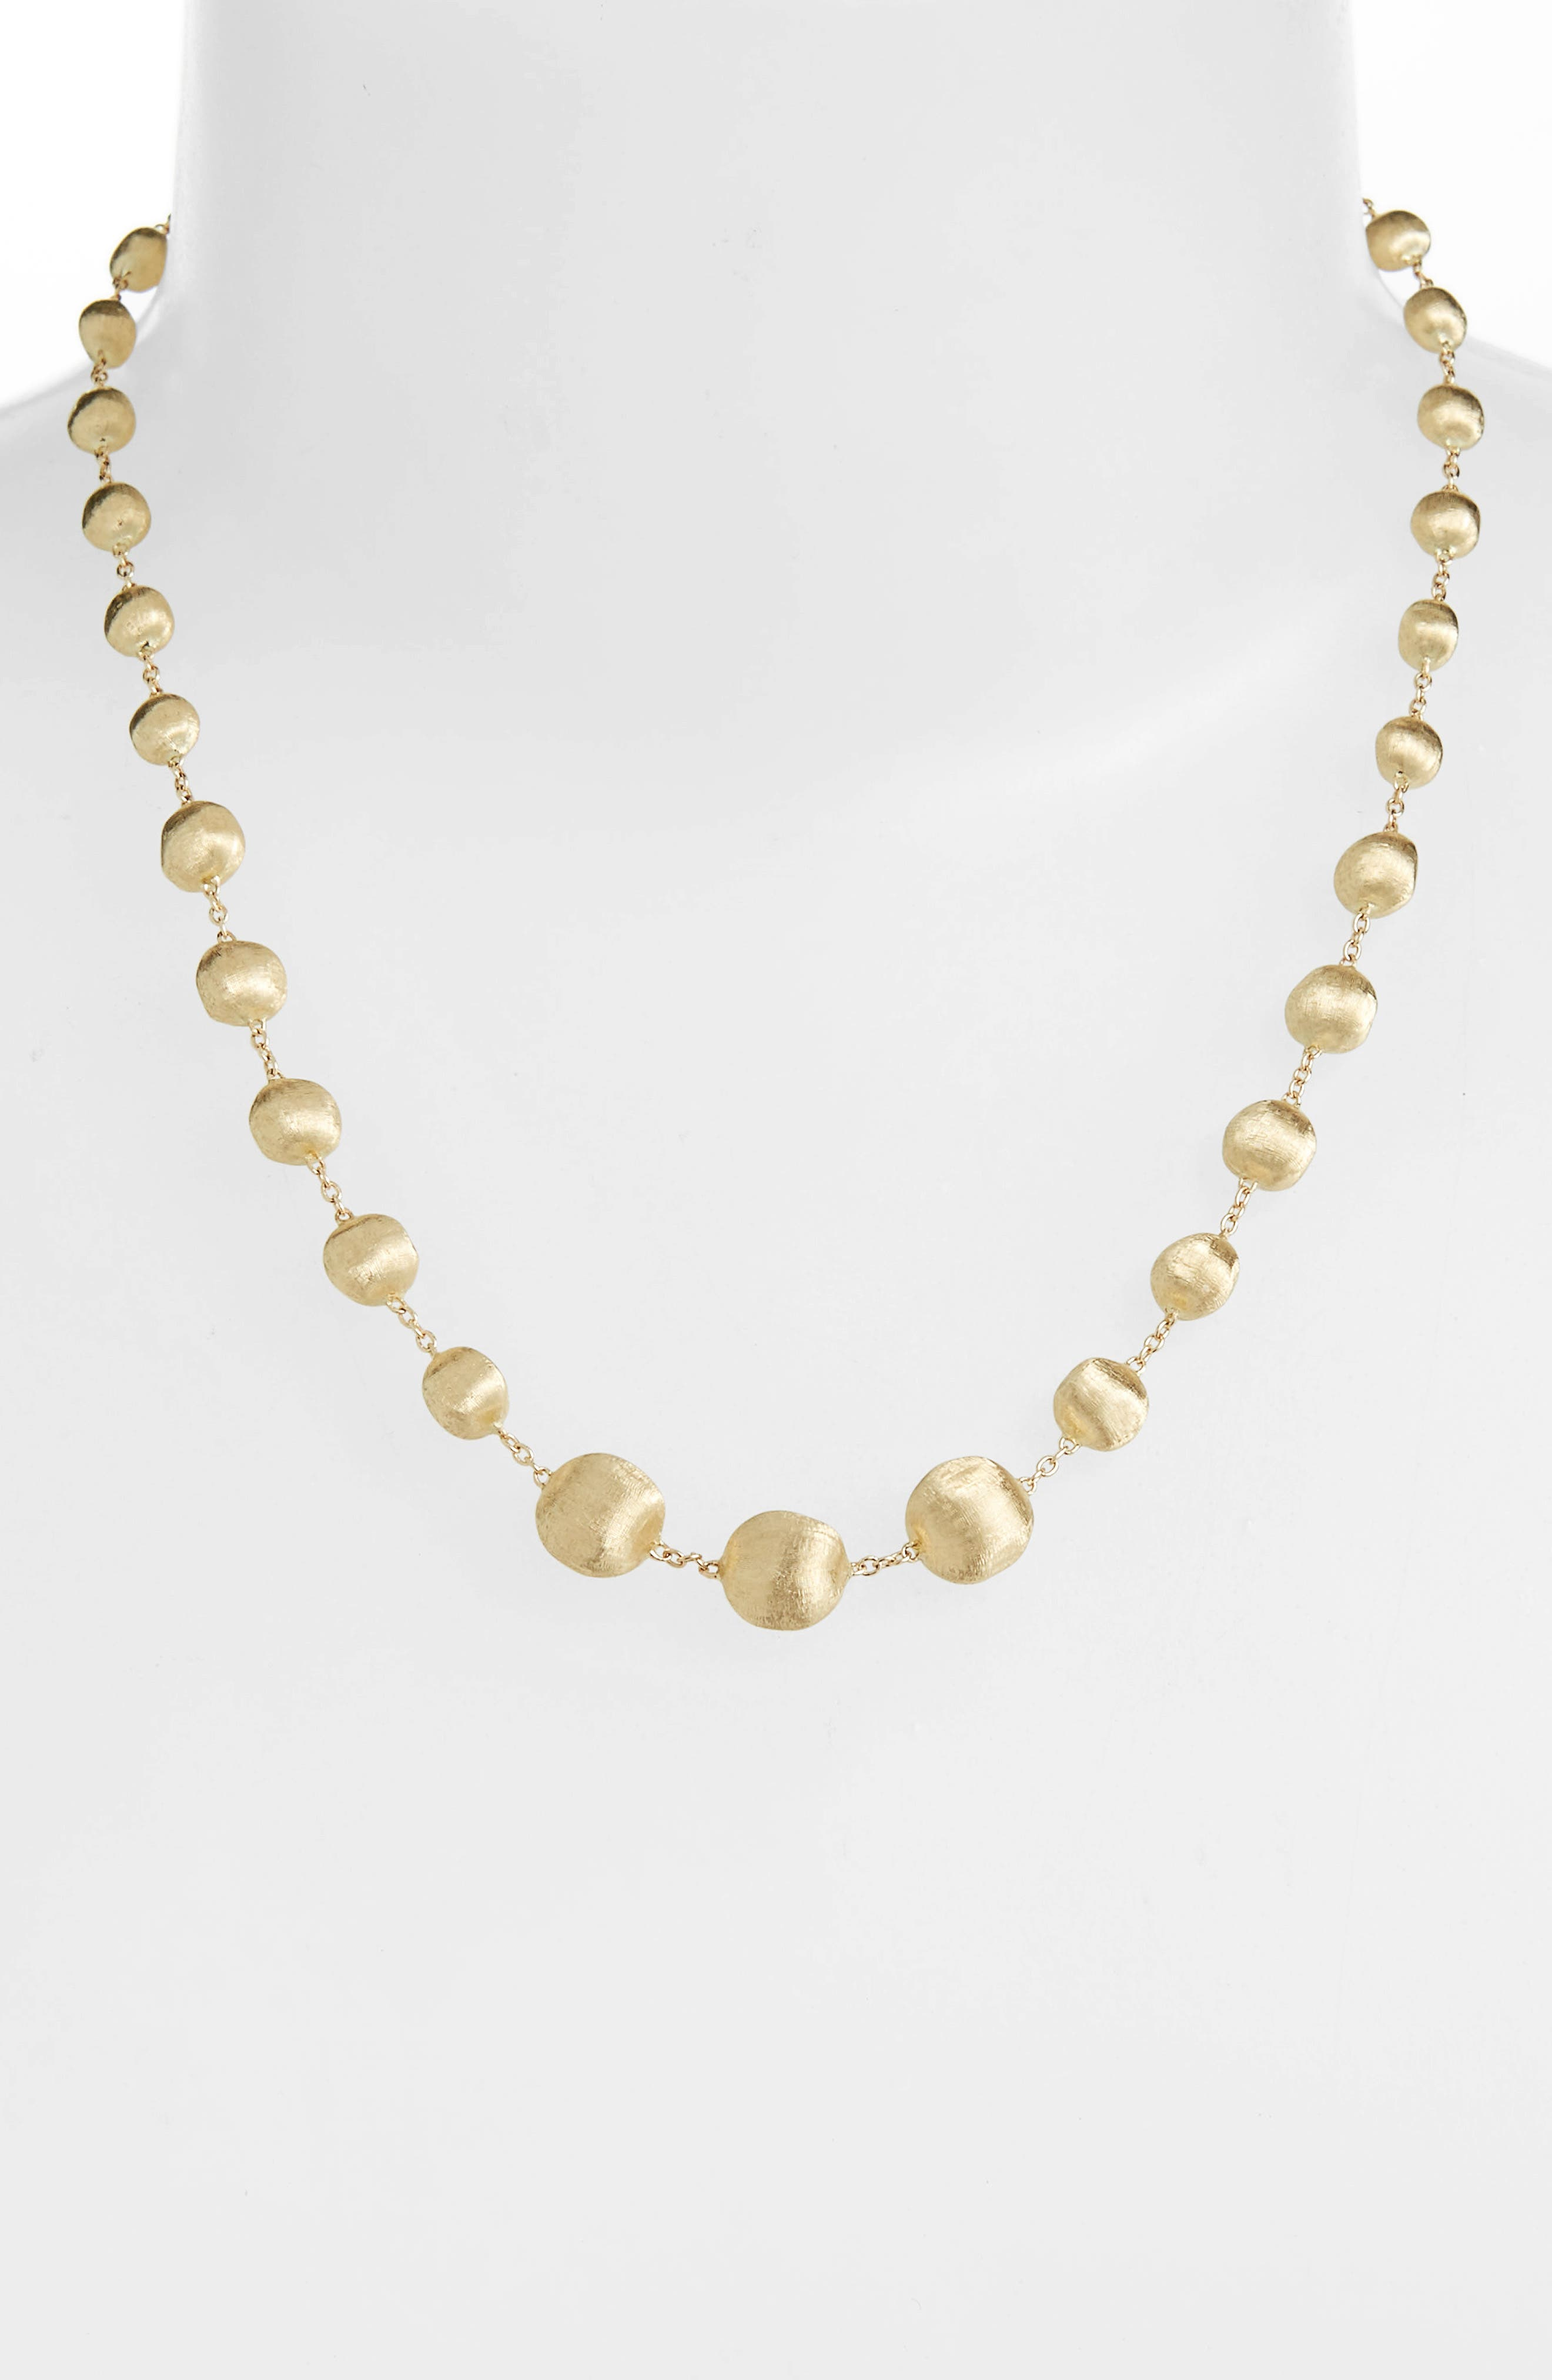 Africa Semiprecious Stone Long Strand Necklace,                             Alternate thumbnail 5, color,                             YELLOW GOLD